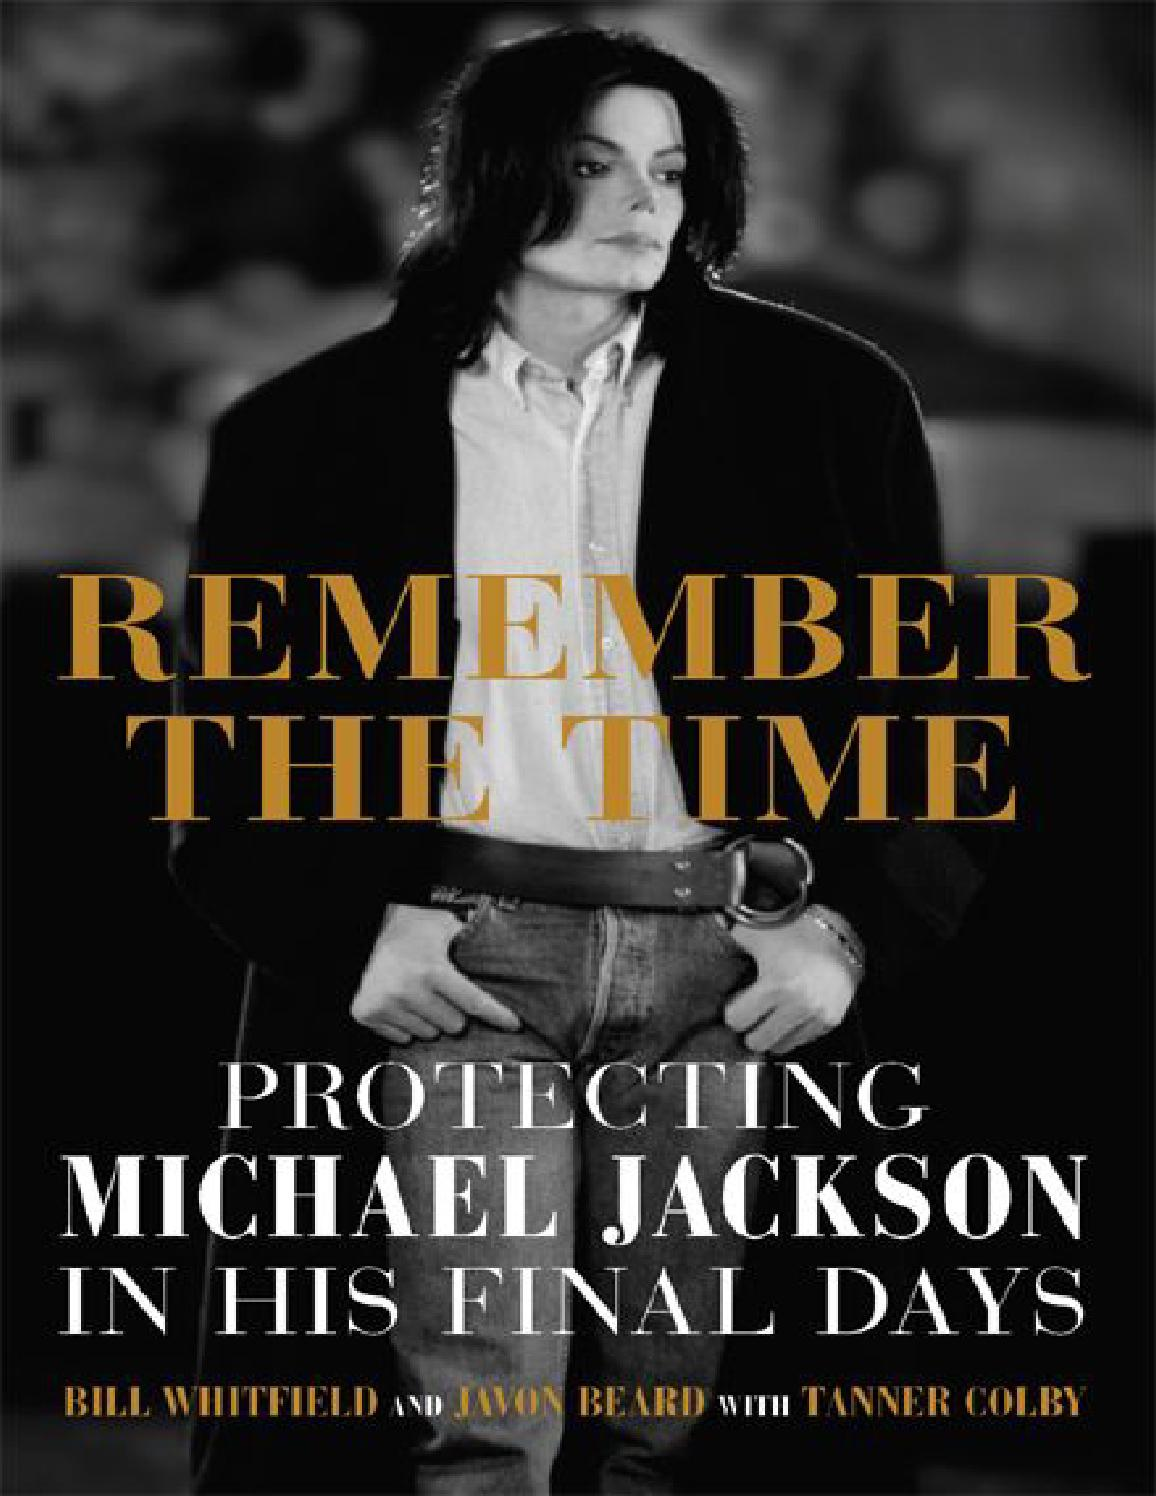 Remember the time protecting michael jackson in his final days by Ms. Keish  - issuu